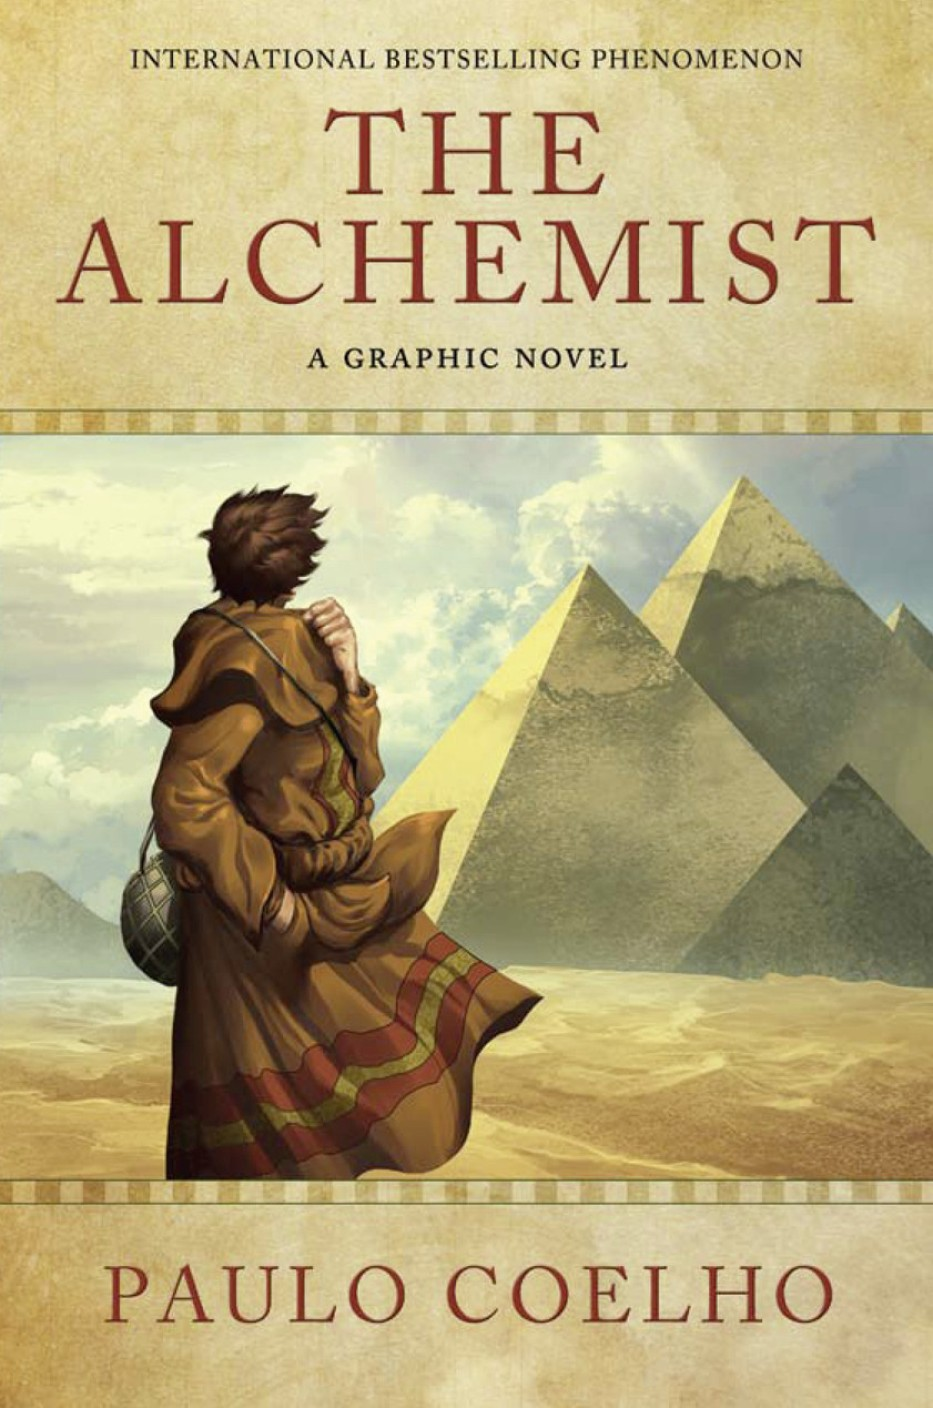 alchemist novel summary alchemist graphic novel a graphic novel  alchemist graphic novel a graphic novel buy alchemist add to cart